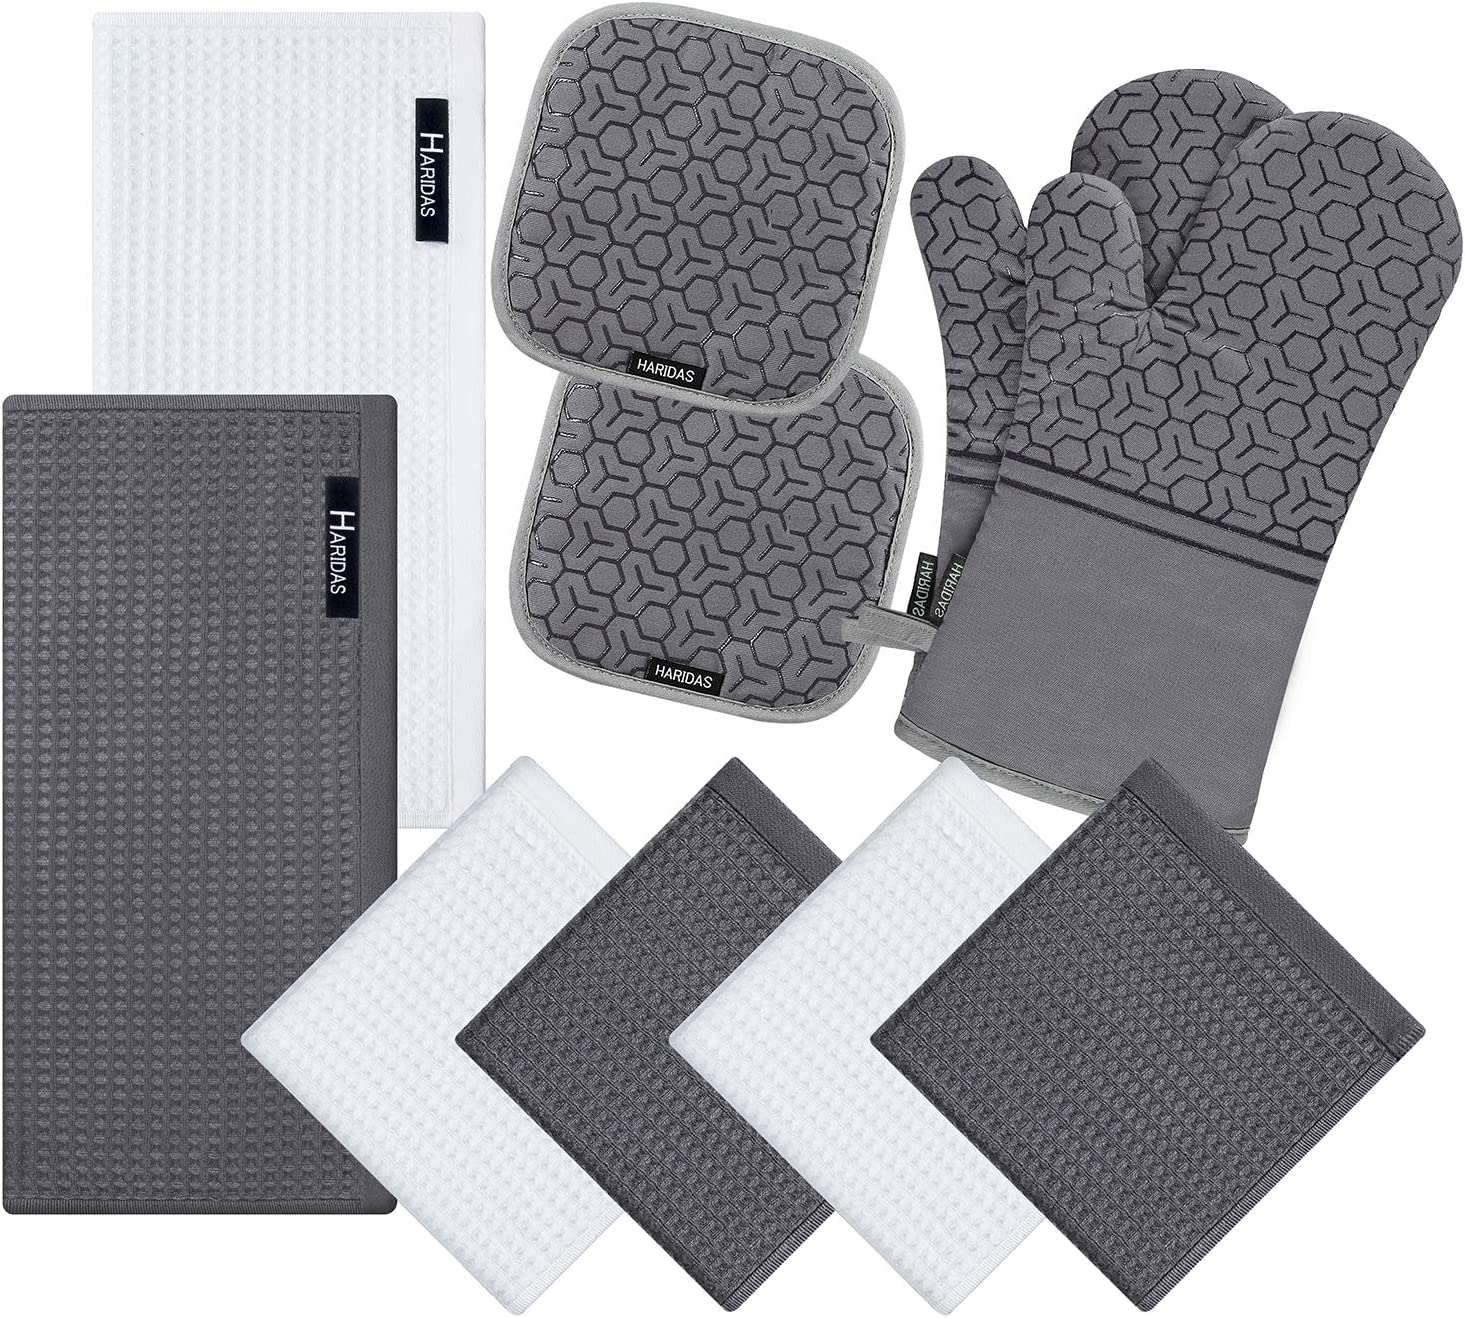 10 Piece Set Silicone Oven Mitts and Pot Holder,with Kitchen Towels and Dish Cloths ,500 Degree Heat Resistant Soft Lining Oven Mitts,Quick Drying Dish Towel,for Kitchen Baking BBQ Grilling (Grey)